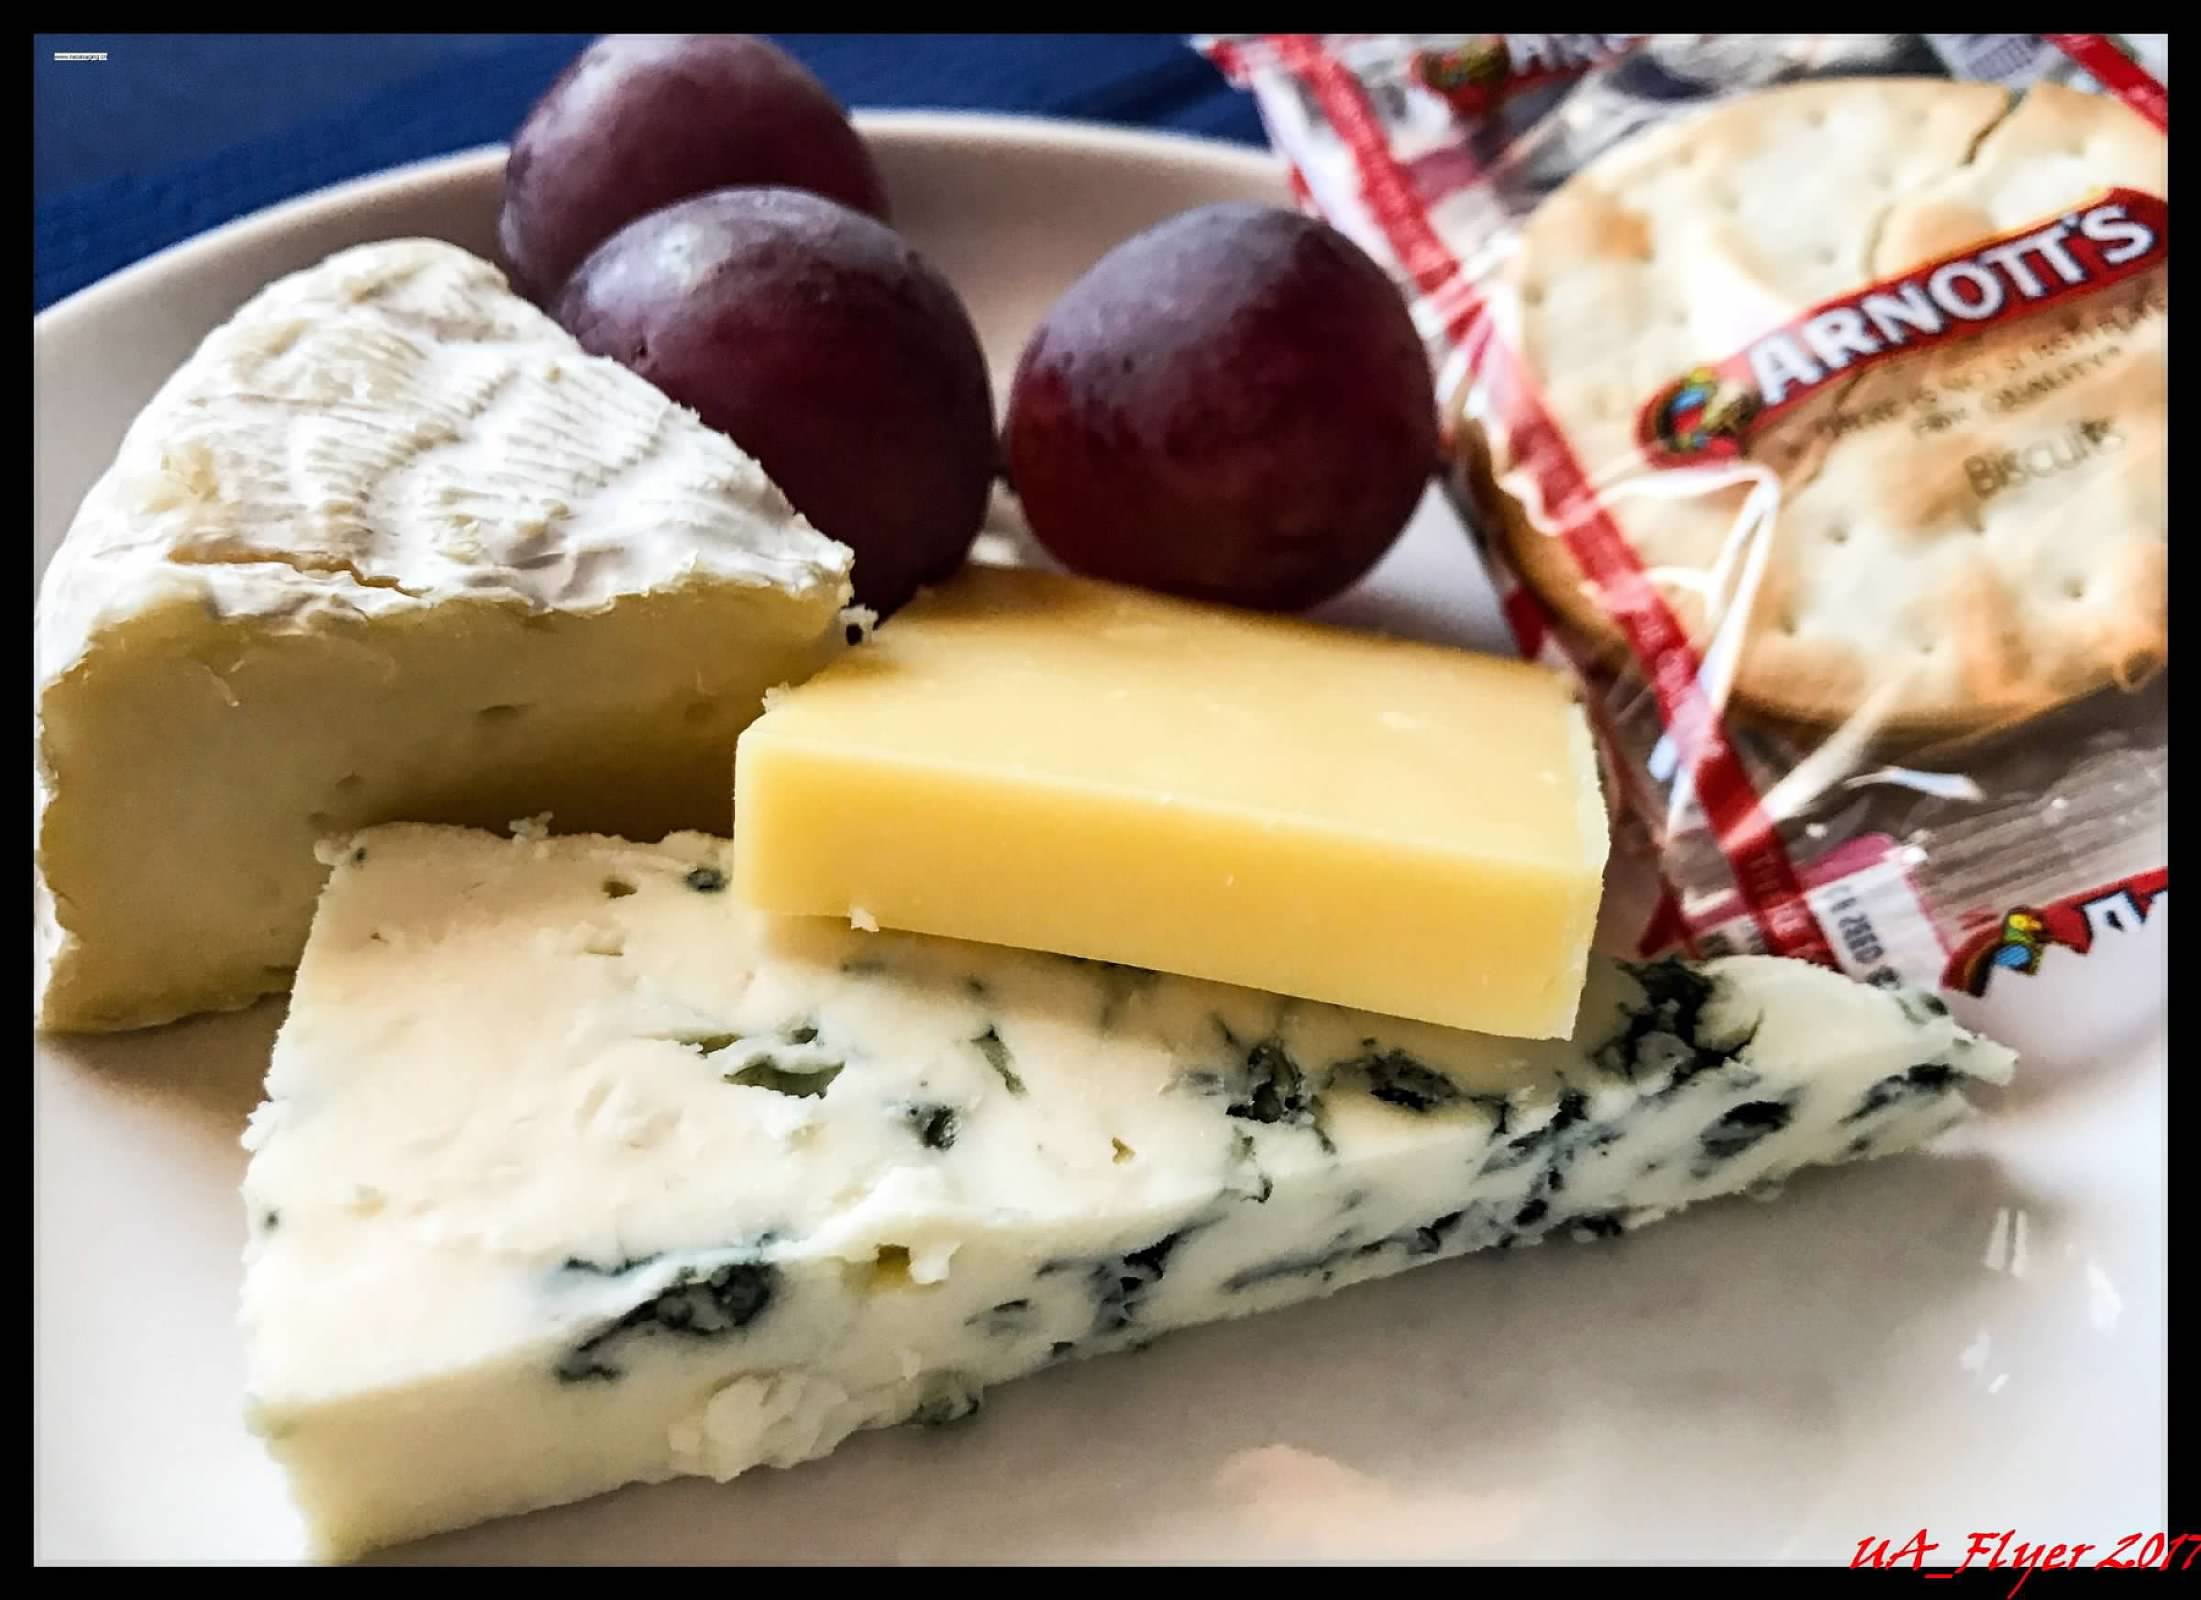 2017 Lets Eat Polaris First Business Page 56 Arnotts Joyful Package Extra Cheese Same Menu As Post772 From The Flight I Took On 13 Days Ago